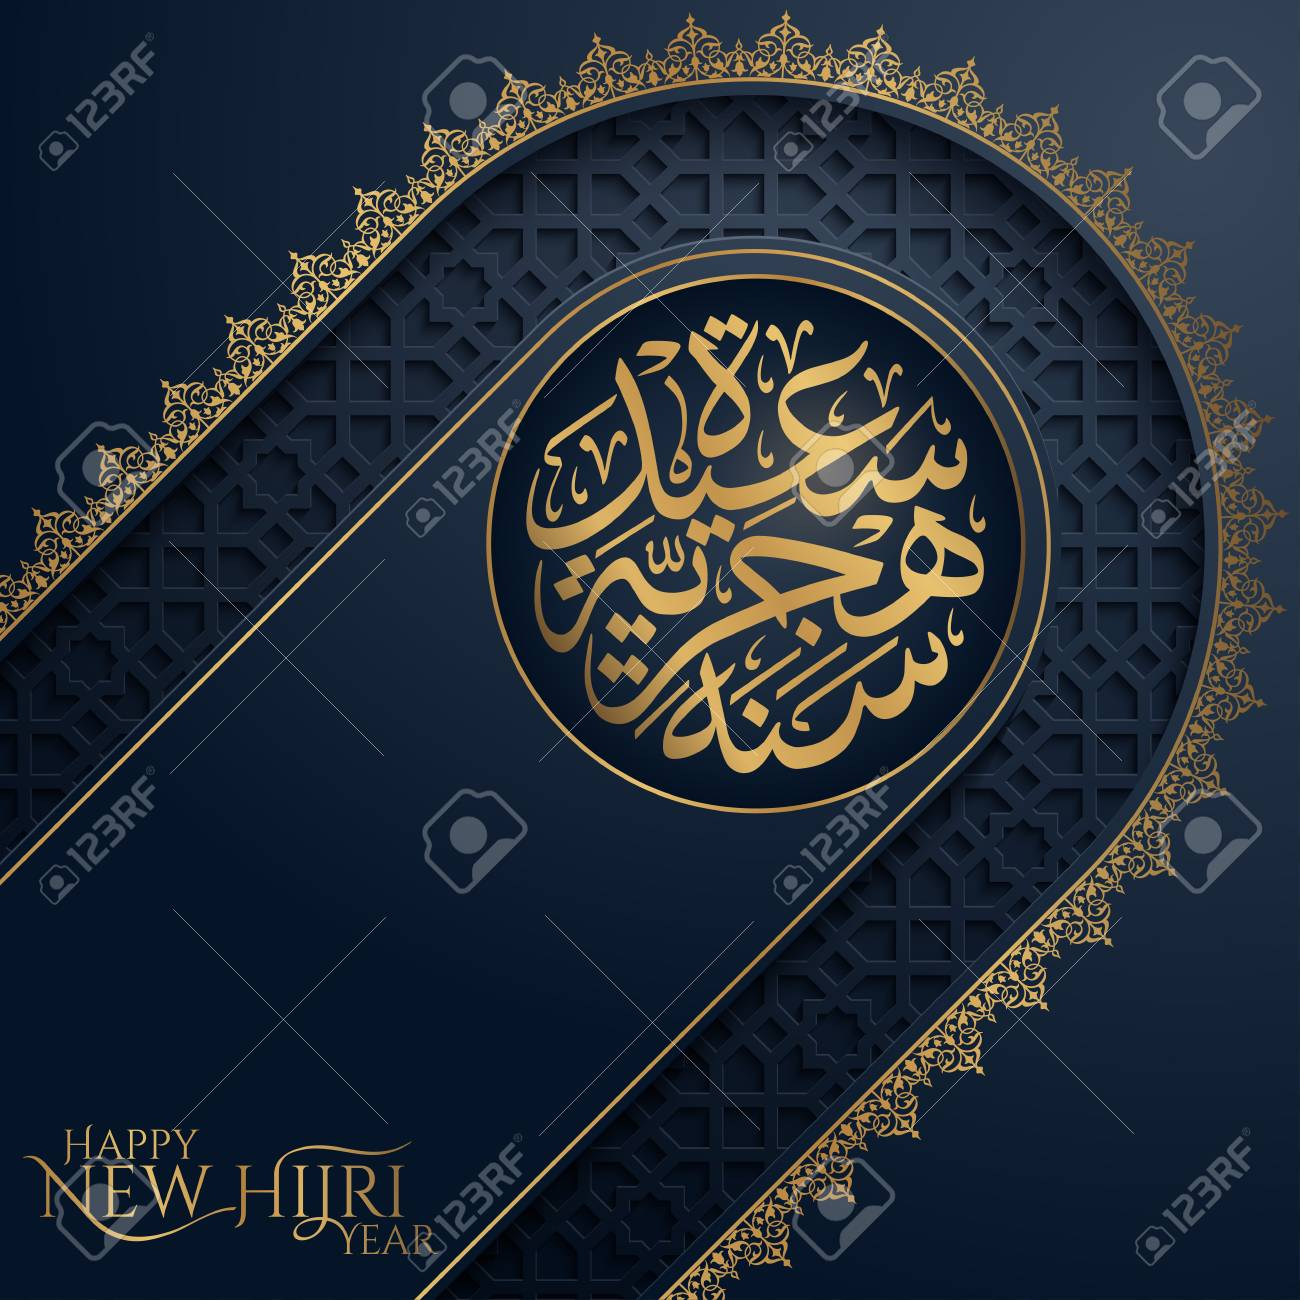 Happy New Hijri Year greeting with arabic calligraphy and kaaba vector illustration for banner background - 120643722